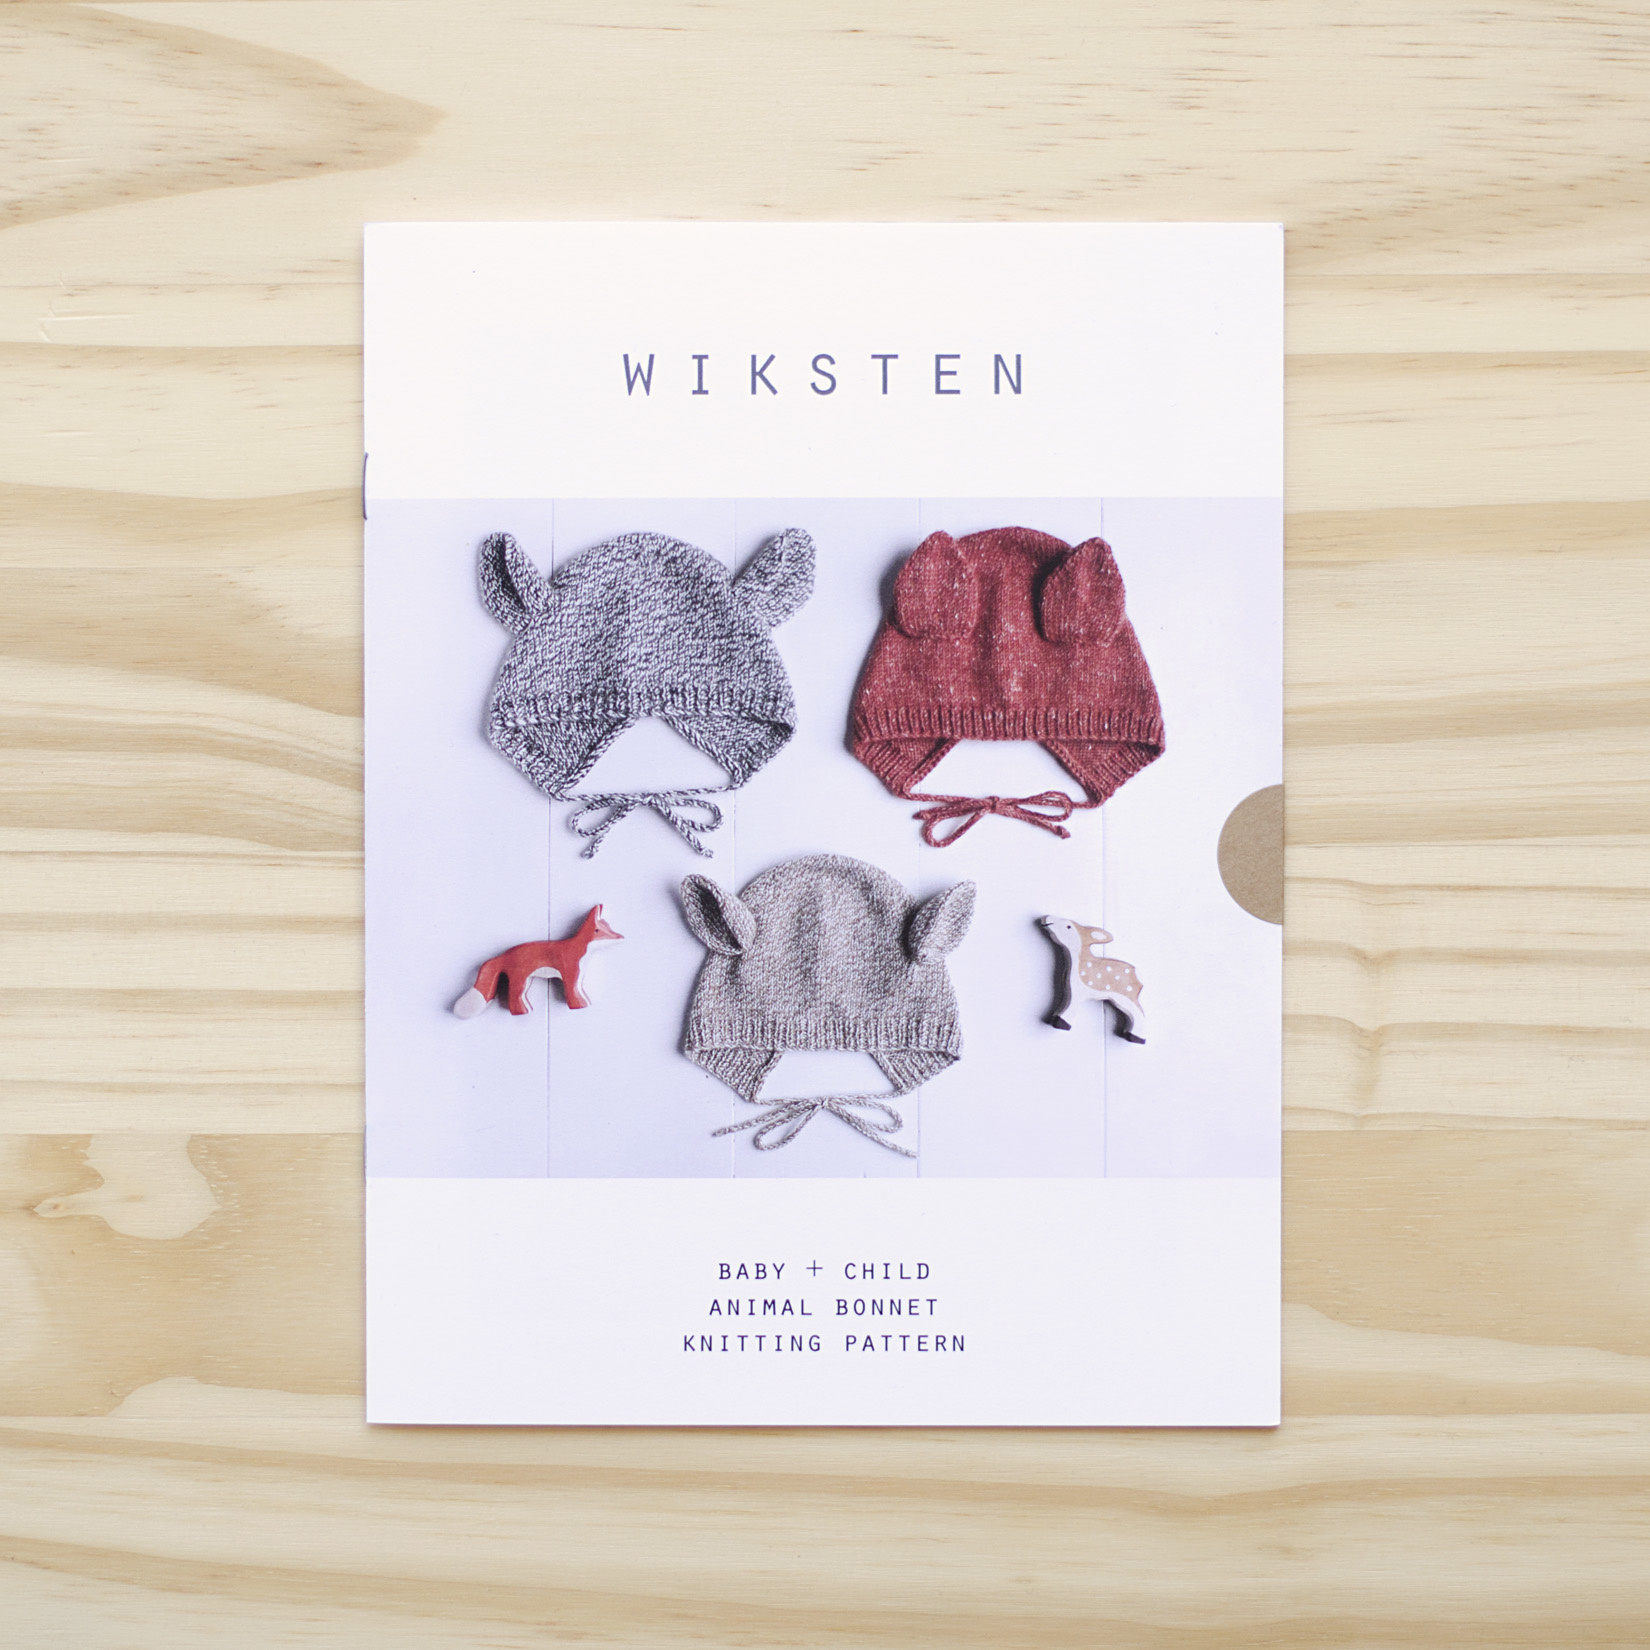 Wiksten : Knitting Pattern : Baby and Child Animal Bonnet